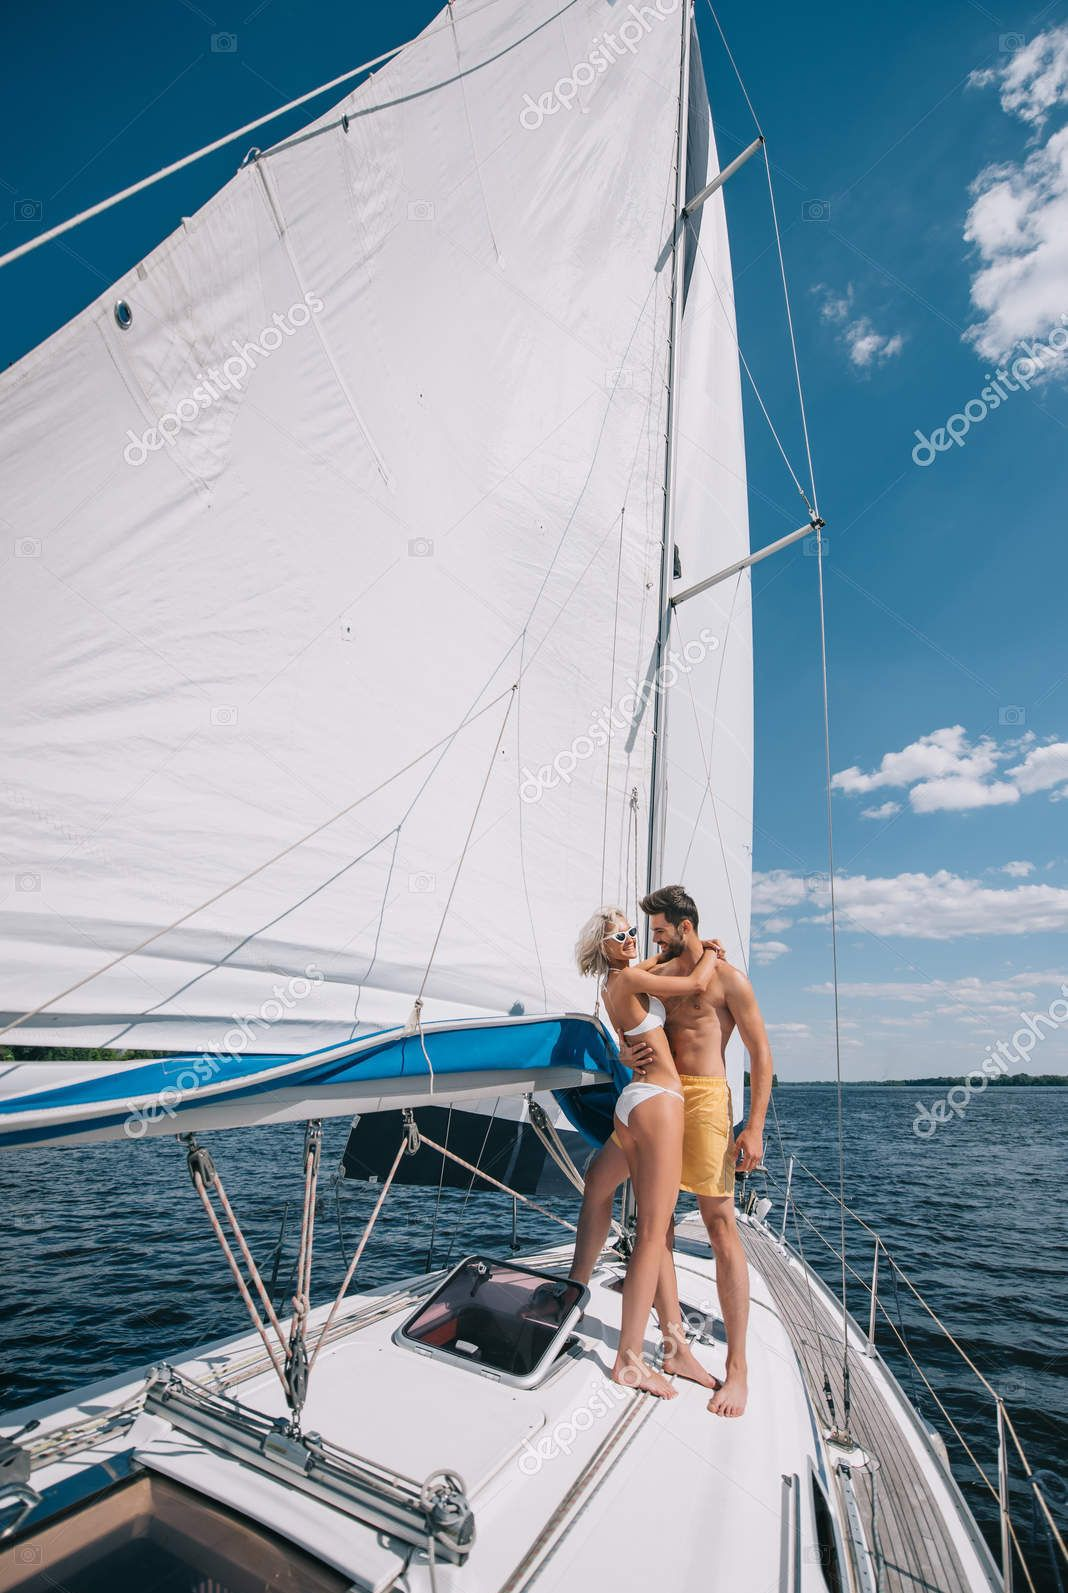 Summer Boating Yacht Curated Stock Photo Sail Ship With